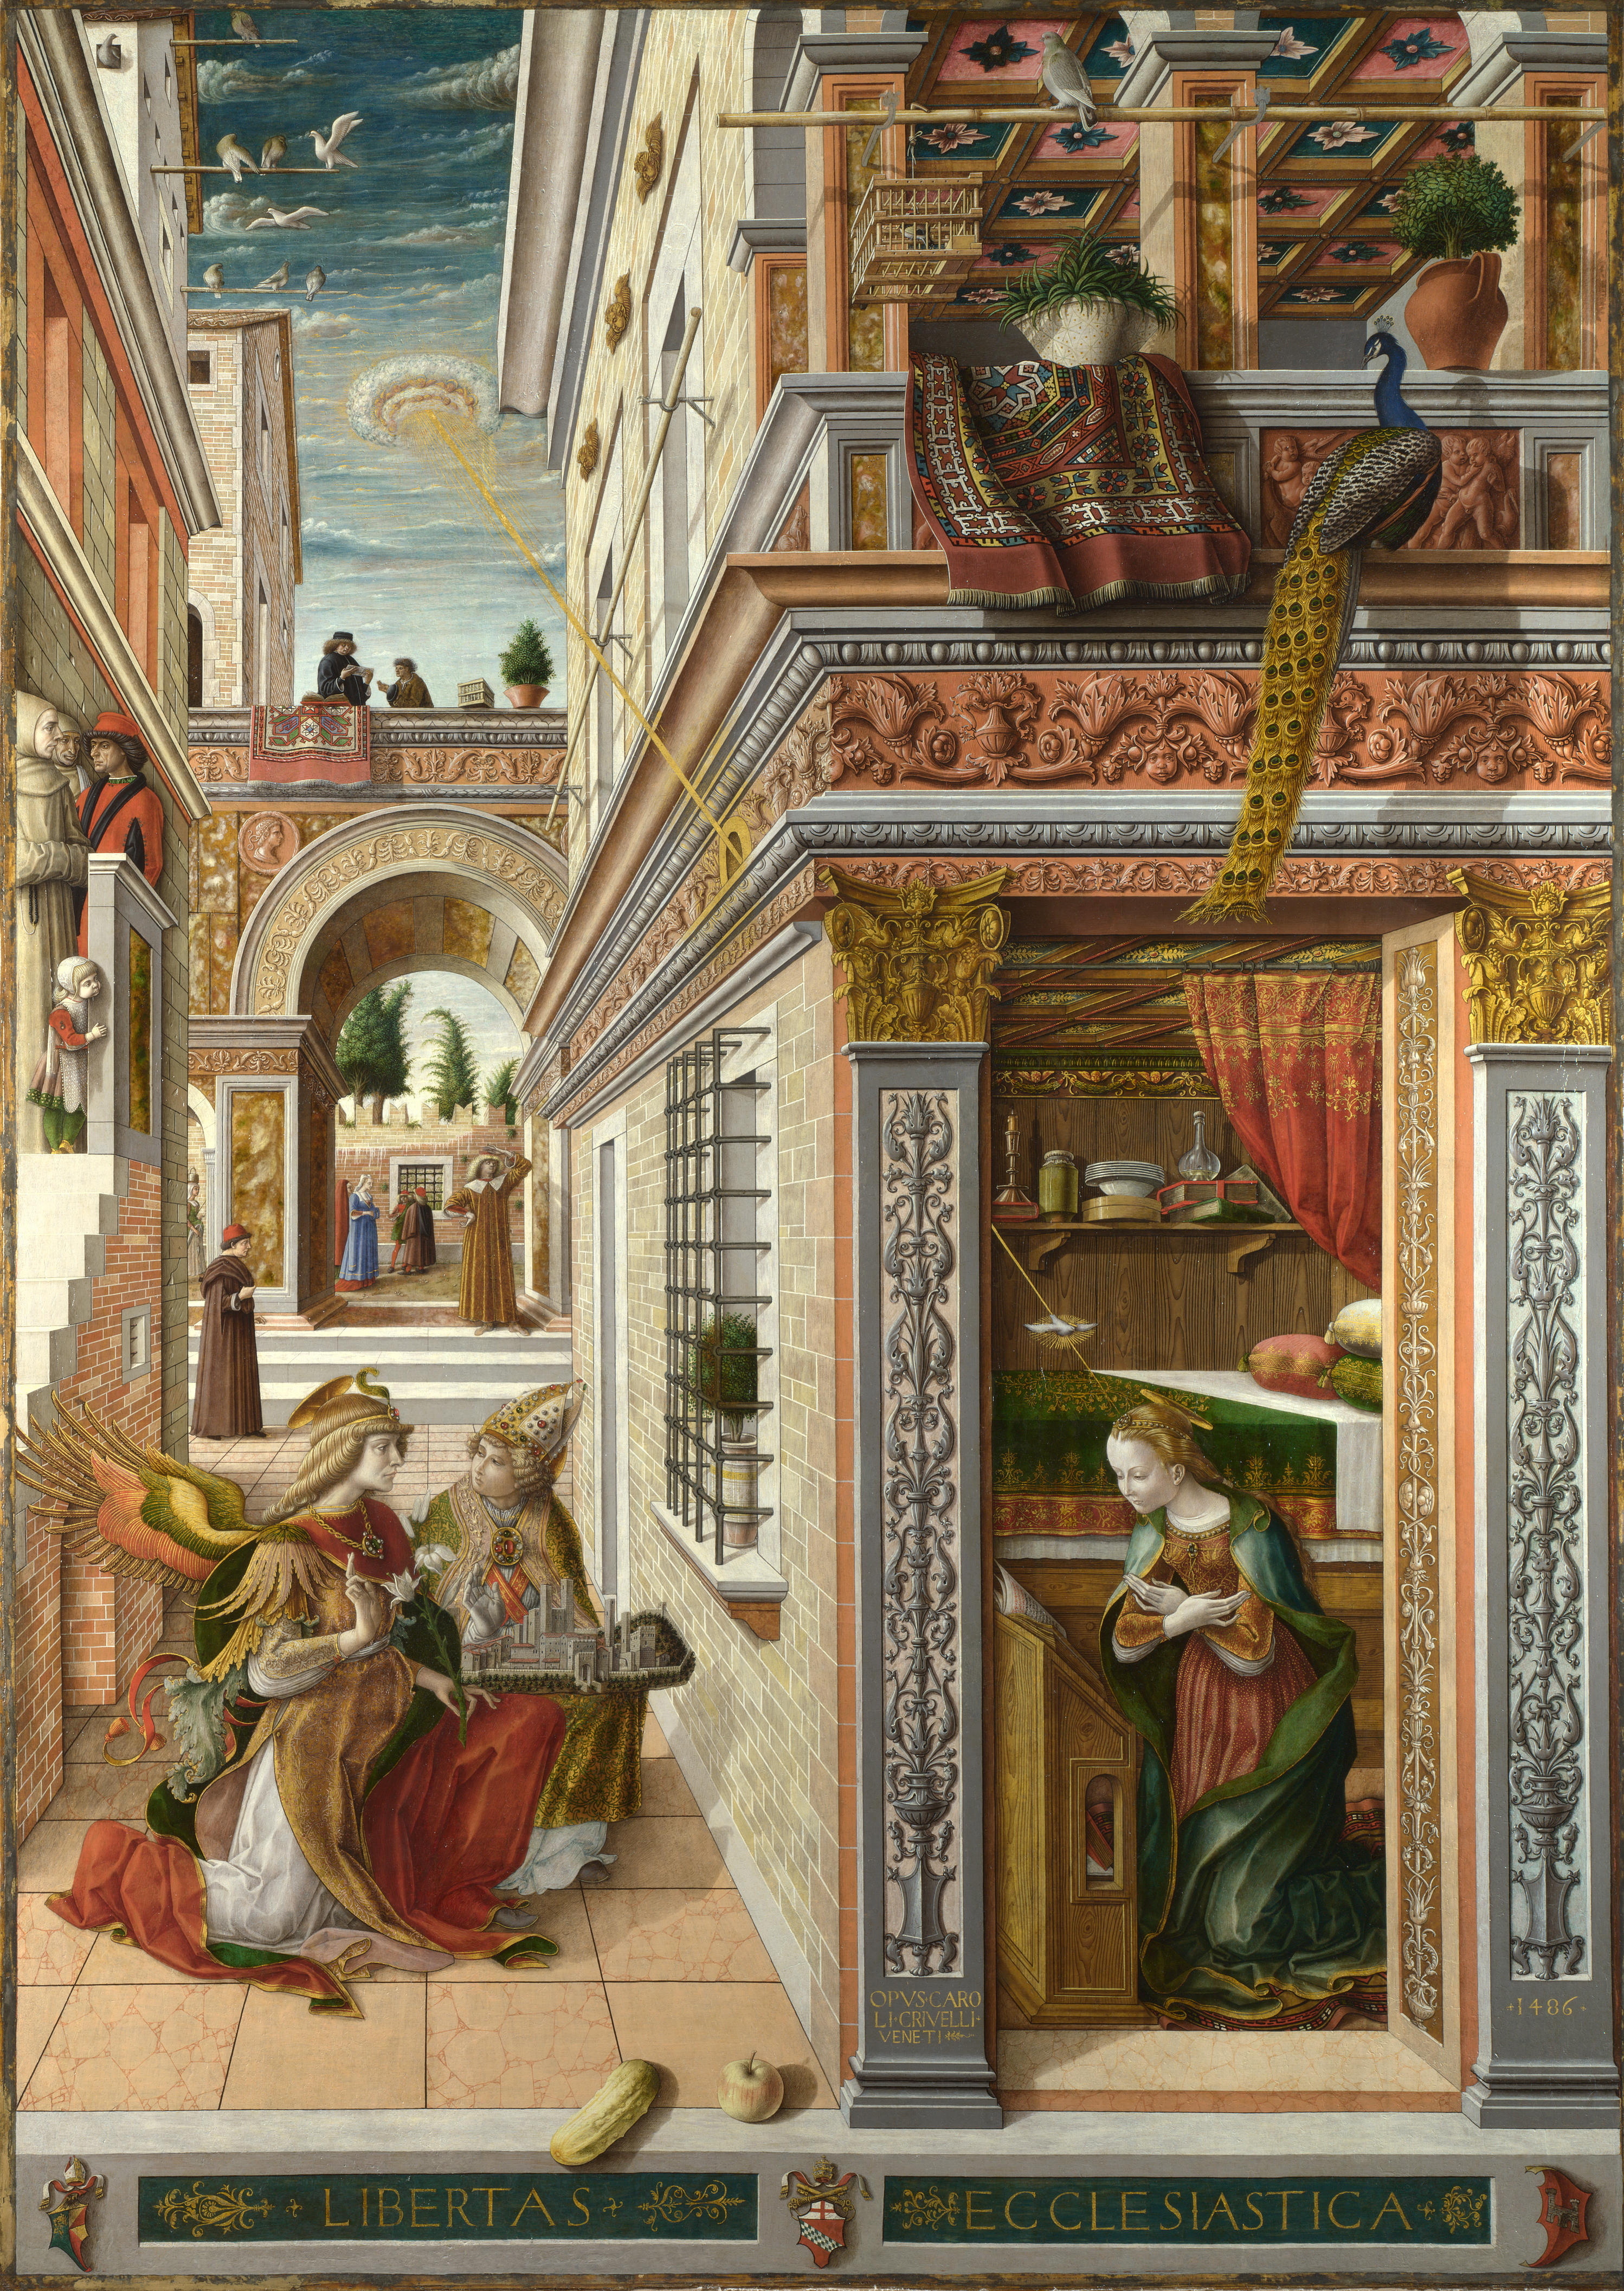 https://upload.wikimedia.org/wikipedia/commons/7/71/The_Annunciation%2C_with_Saint_Emidius_-_Carlo_Crivelli_-_National_Gallery.jpg?uselang=ru